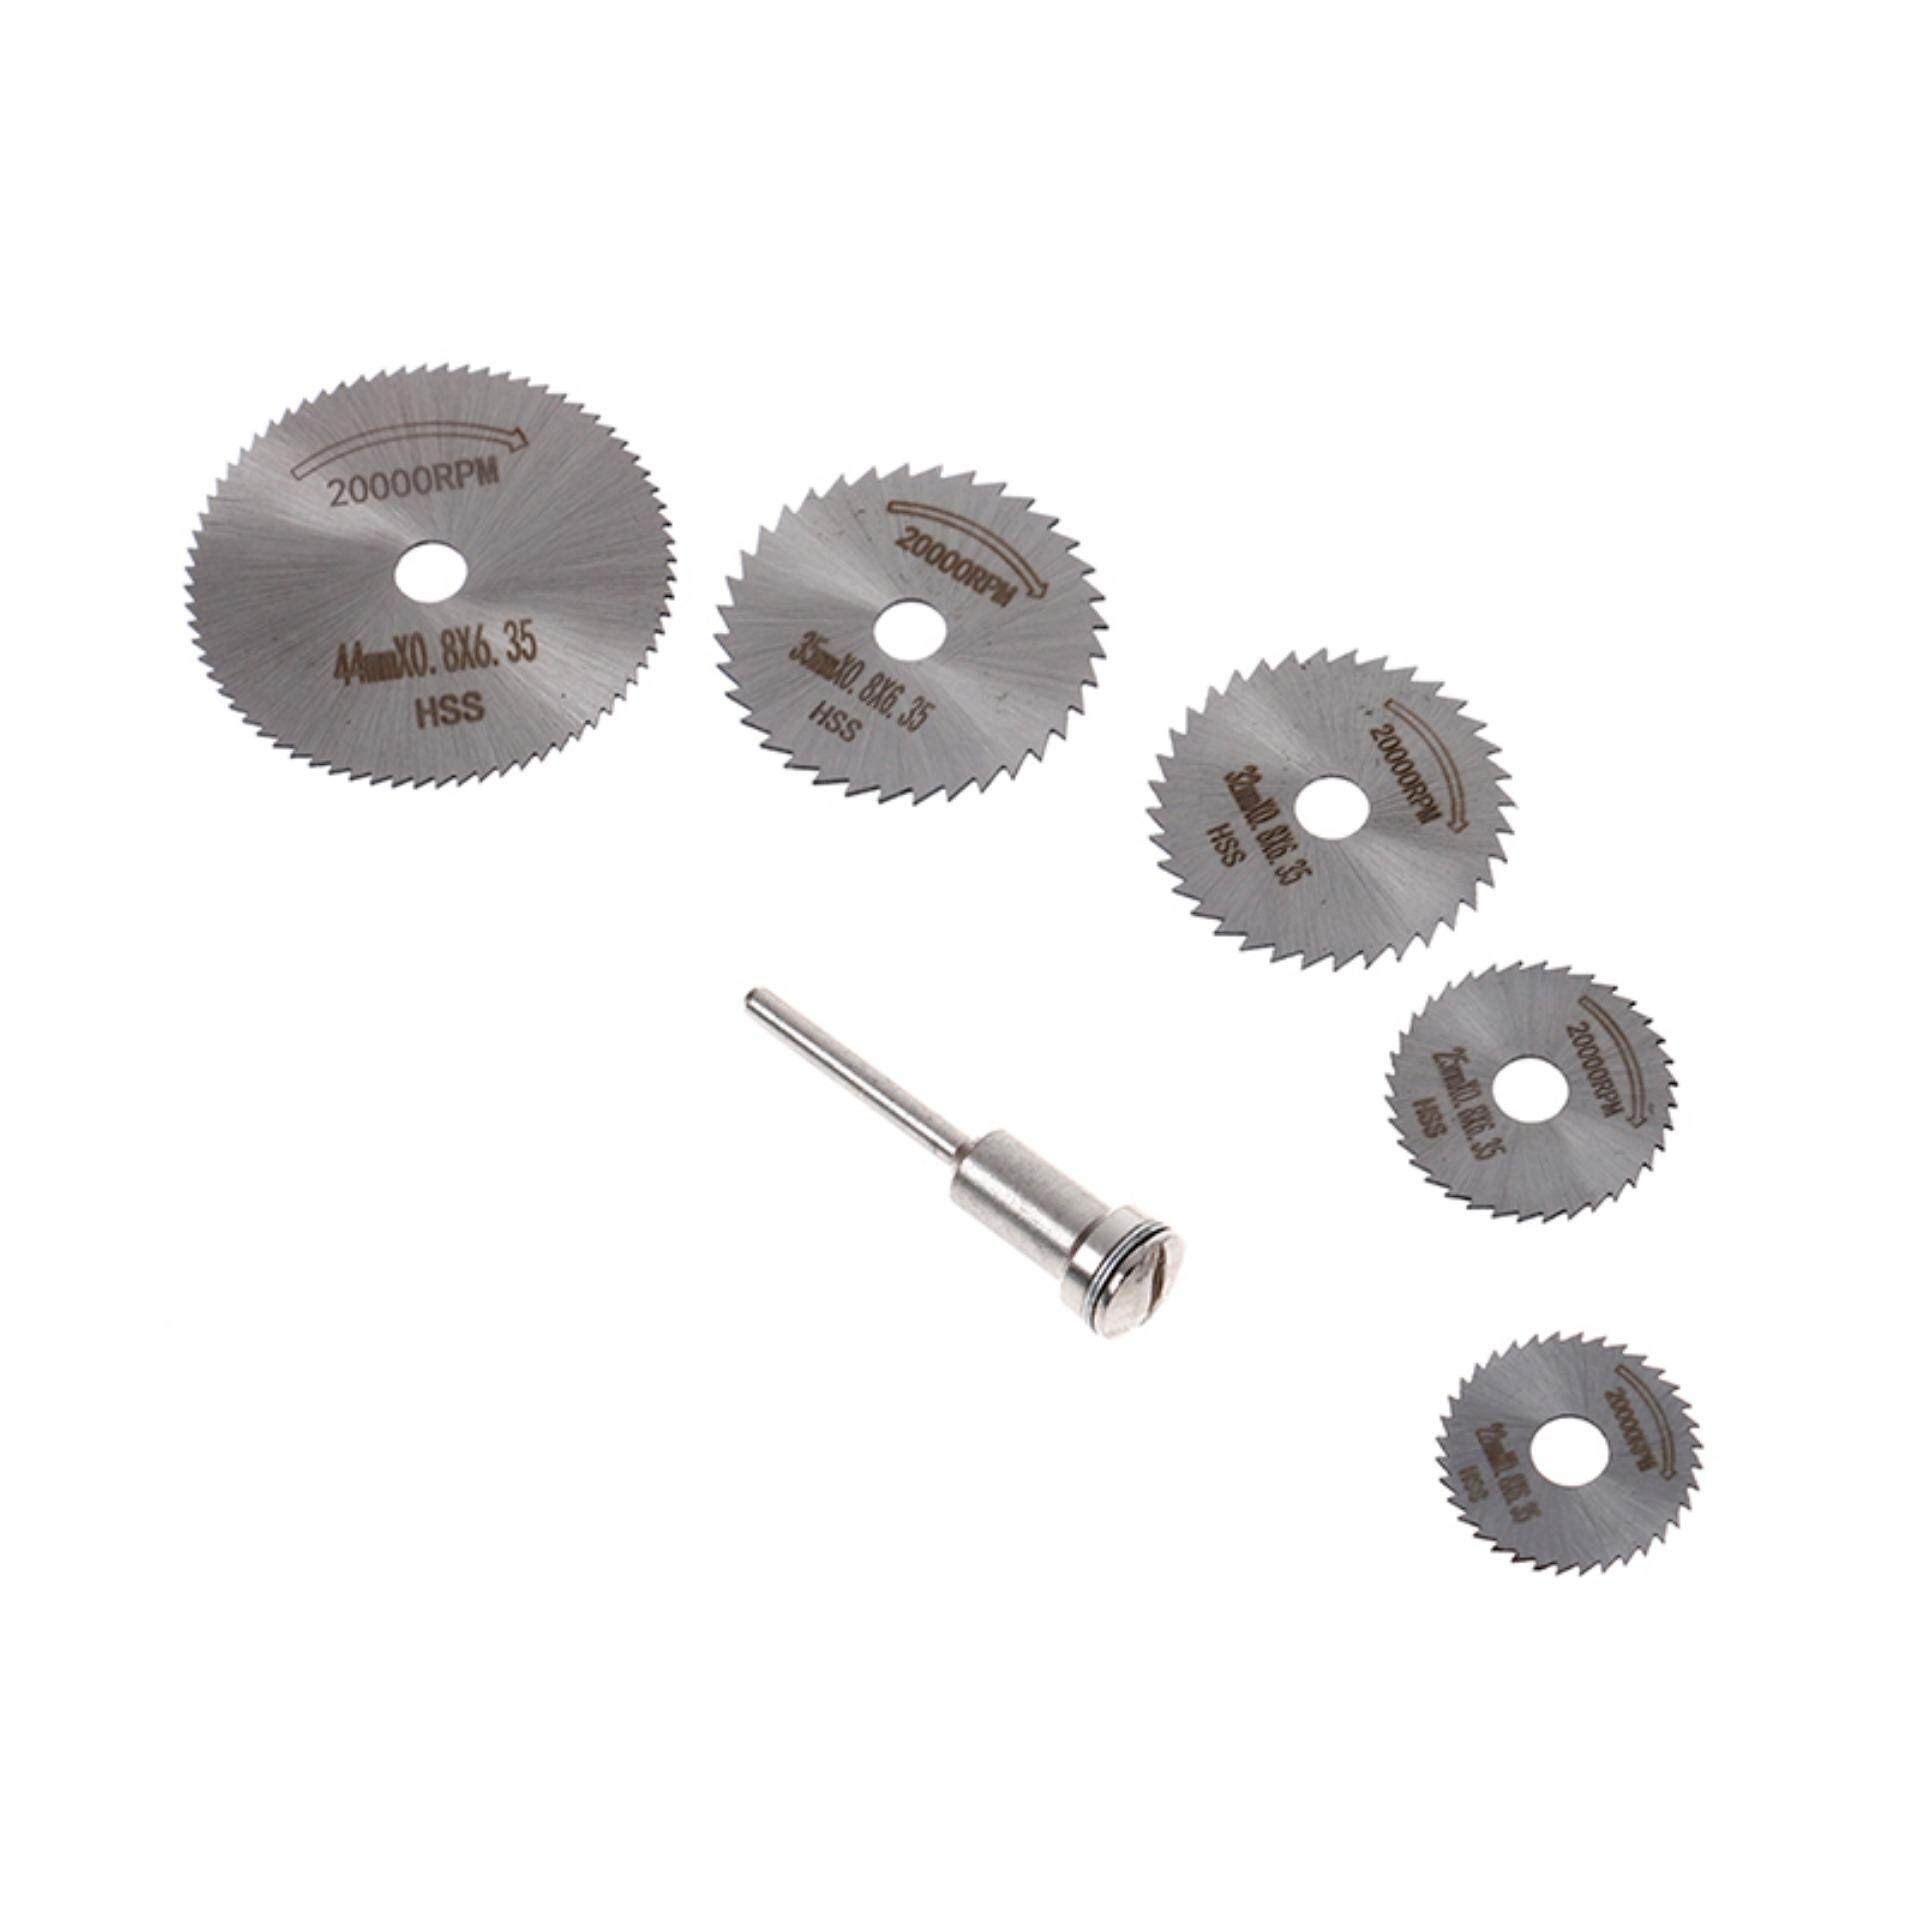 Circular Saw Disc Set Accessory Small Drill Rotary Tool Wood Cutting Fast